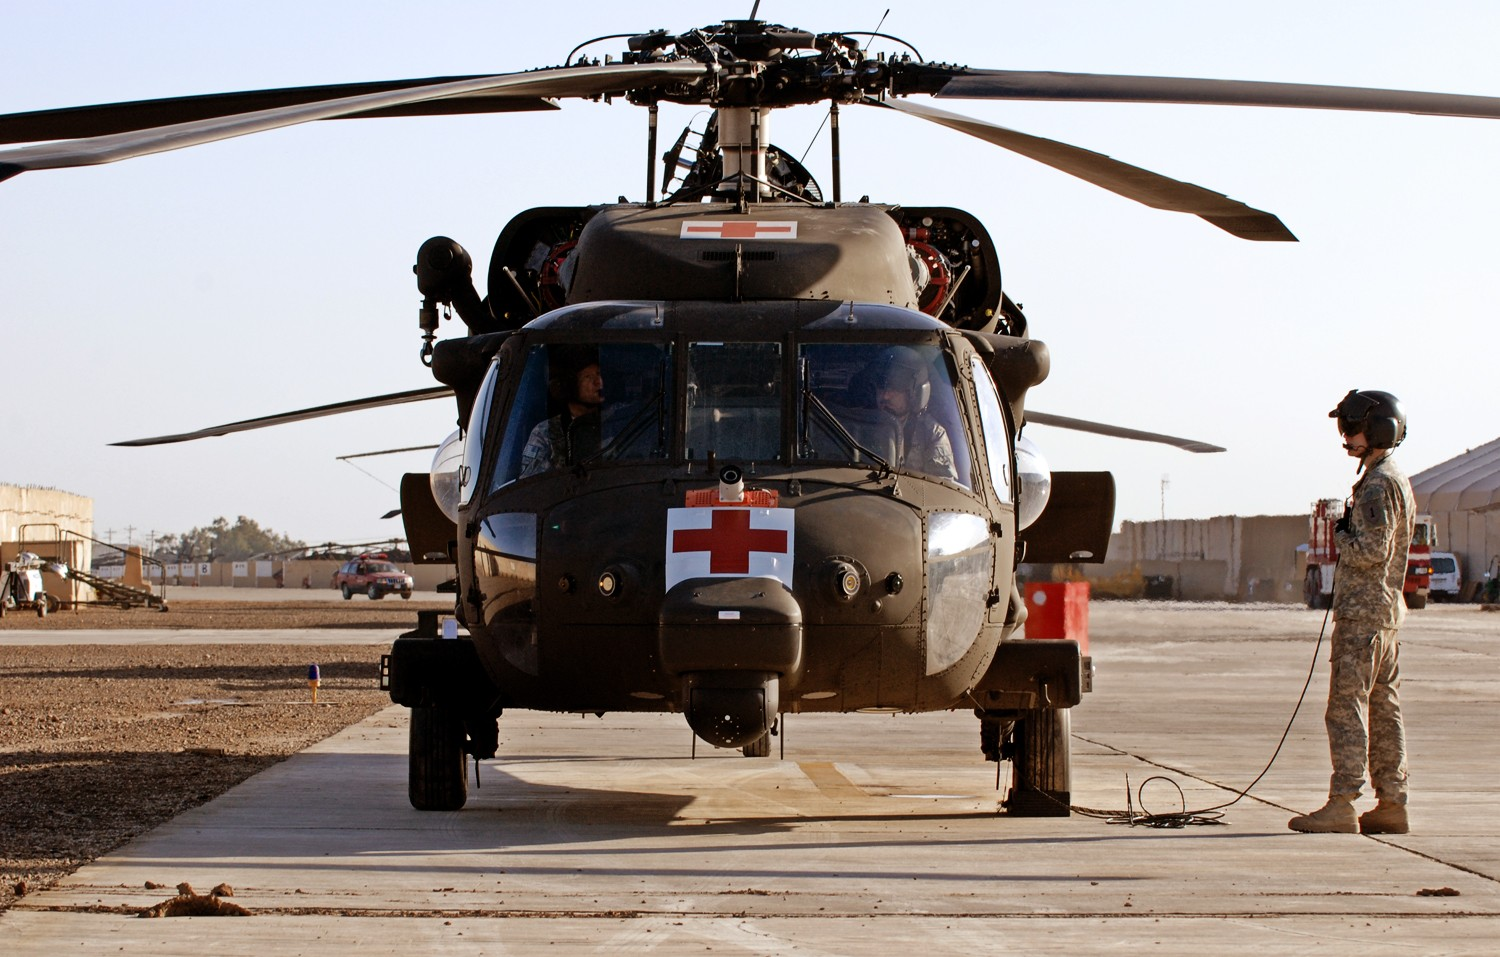 mh helicopter with 95502 on A129 Mangusta Helicopter as well Mh 53e sea dragon moreover 5 Most Secret Military Aircraft That We Know About likewise Watch additionally Stallion cart.